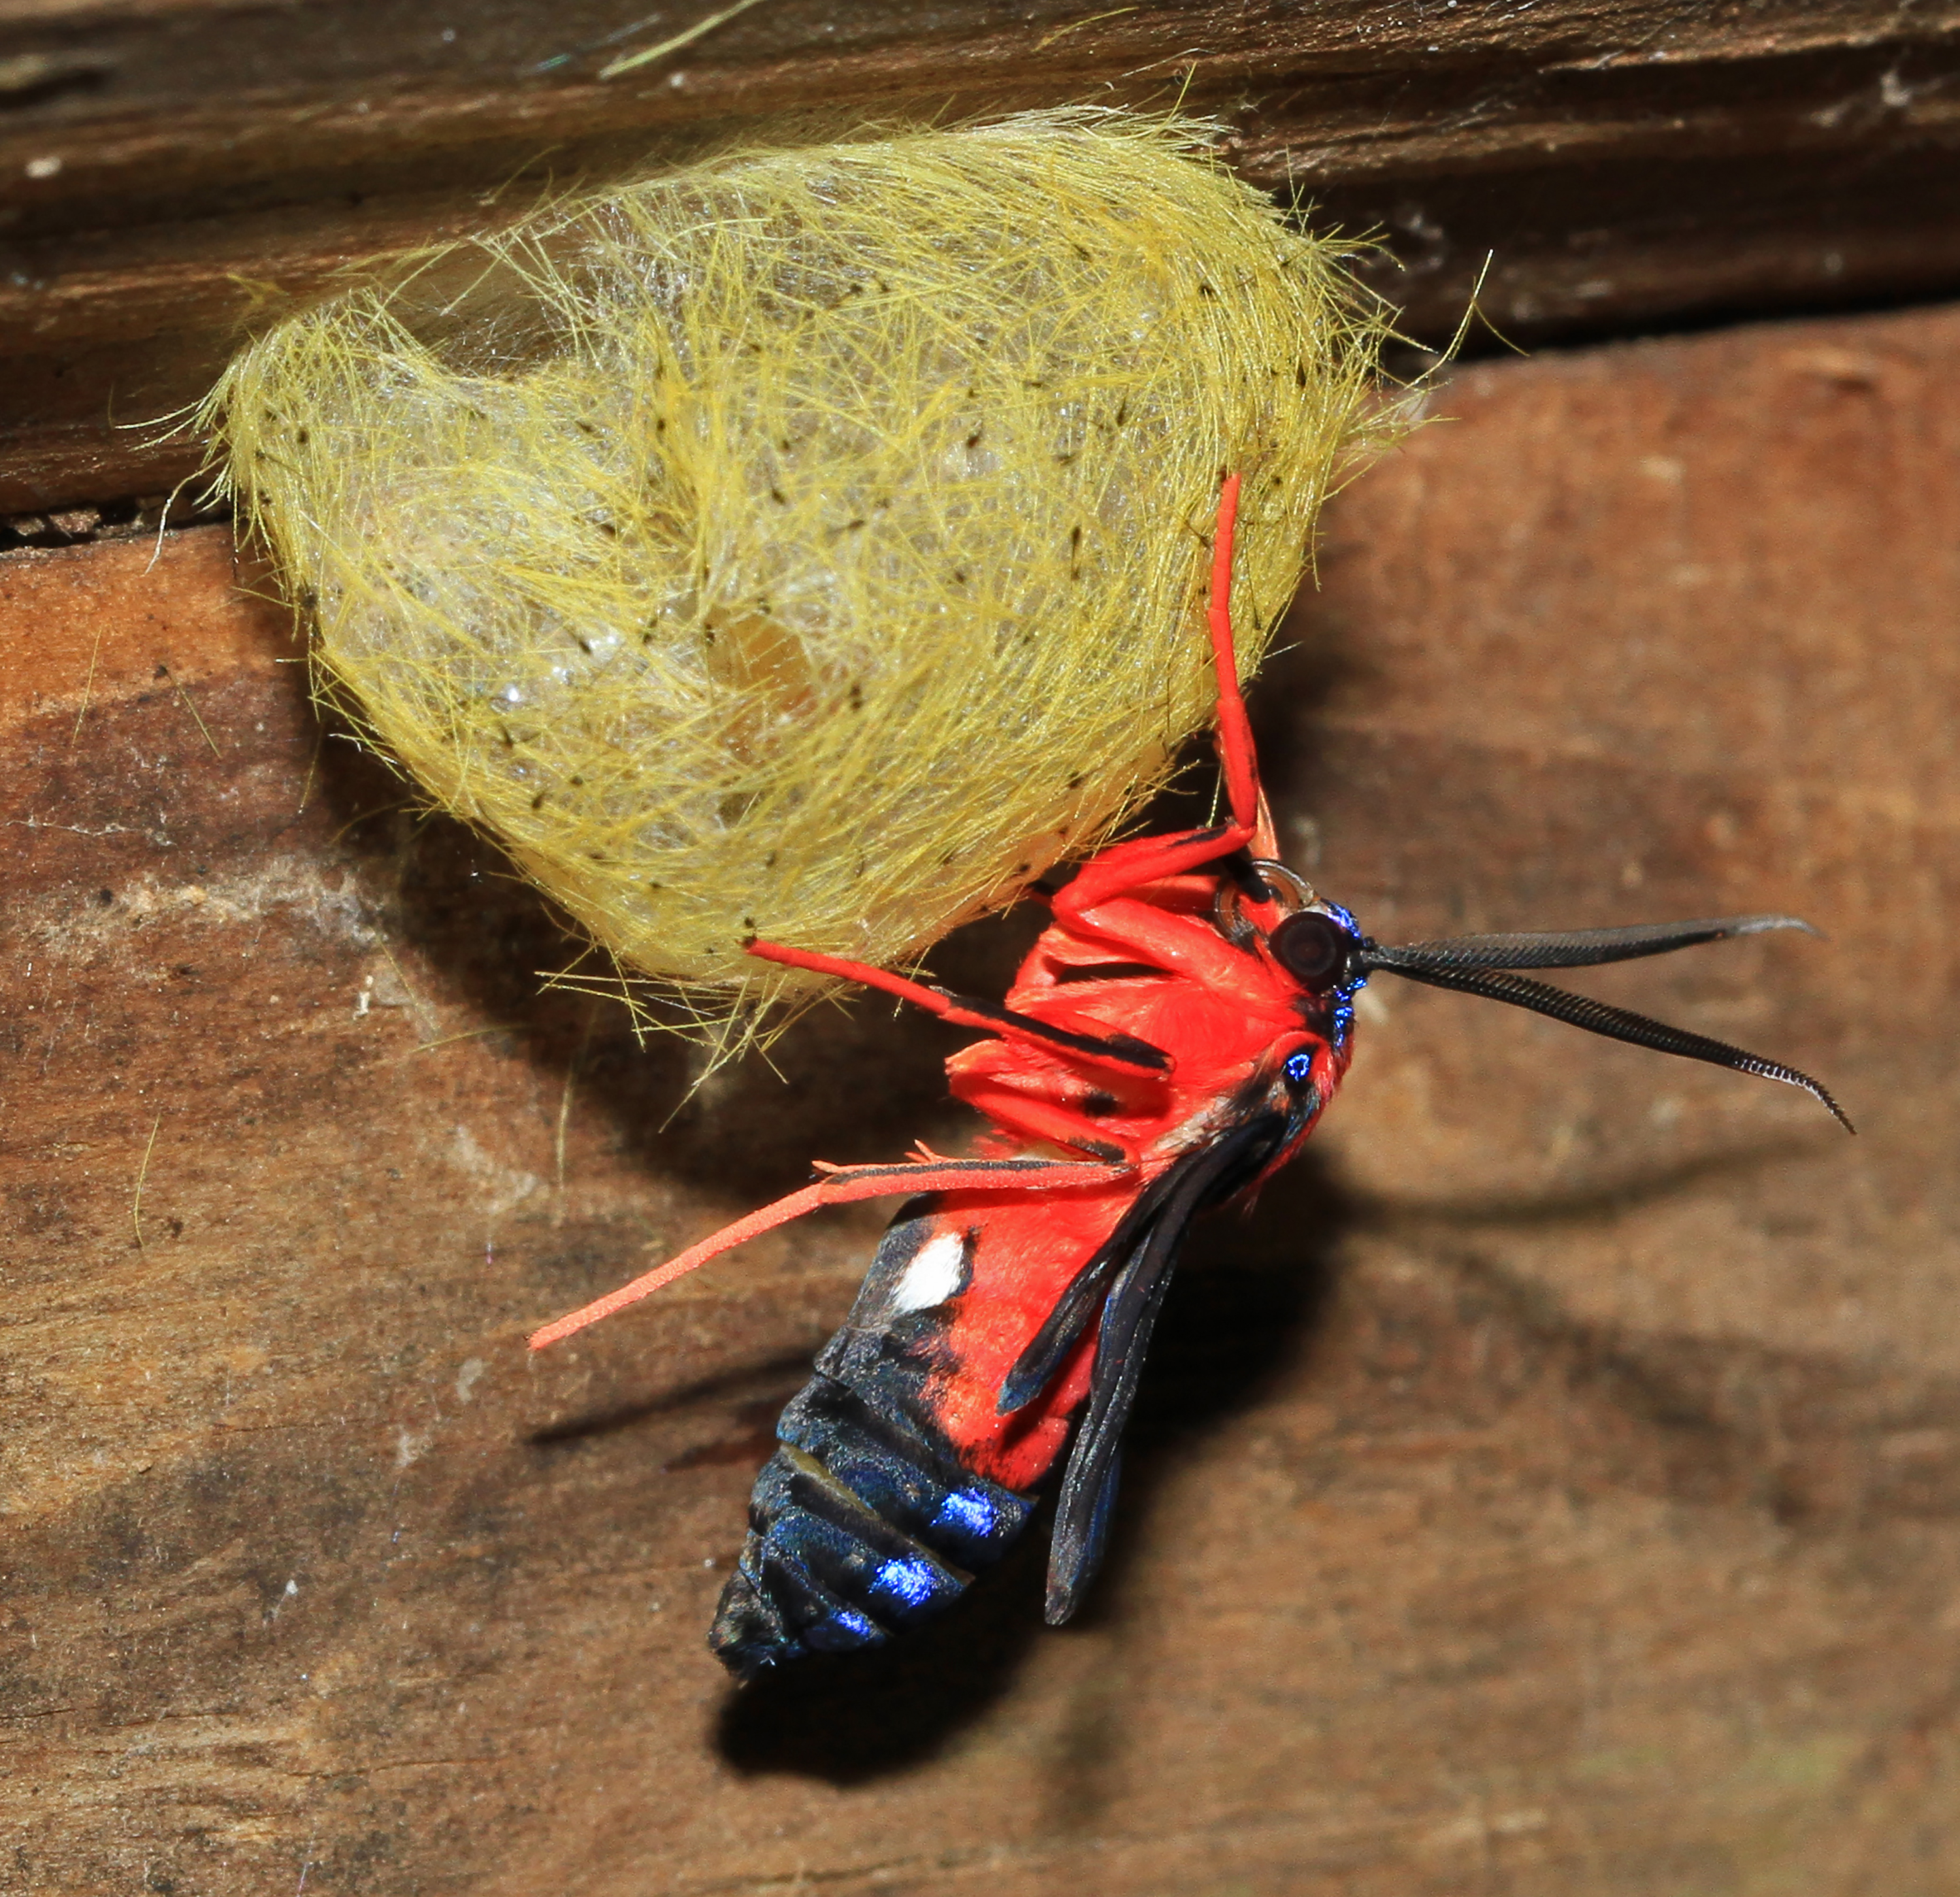 A red and black wasp moth near a cocoon.